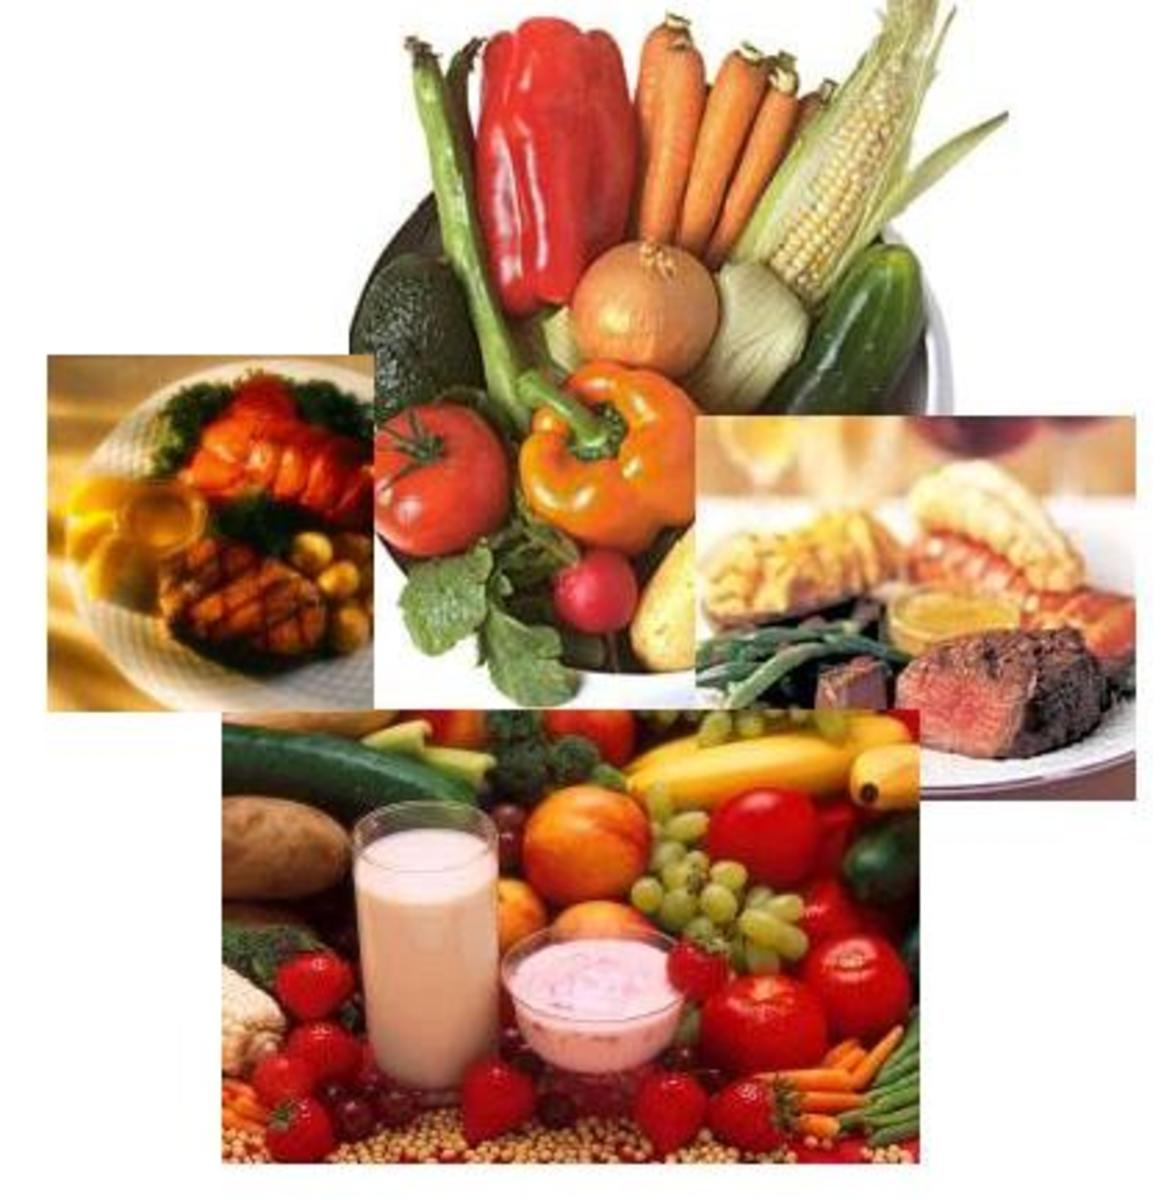 Eat fruits and vegetables ,but avoid sweet fruits like grapes and apple.